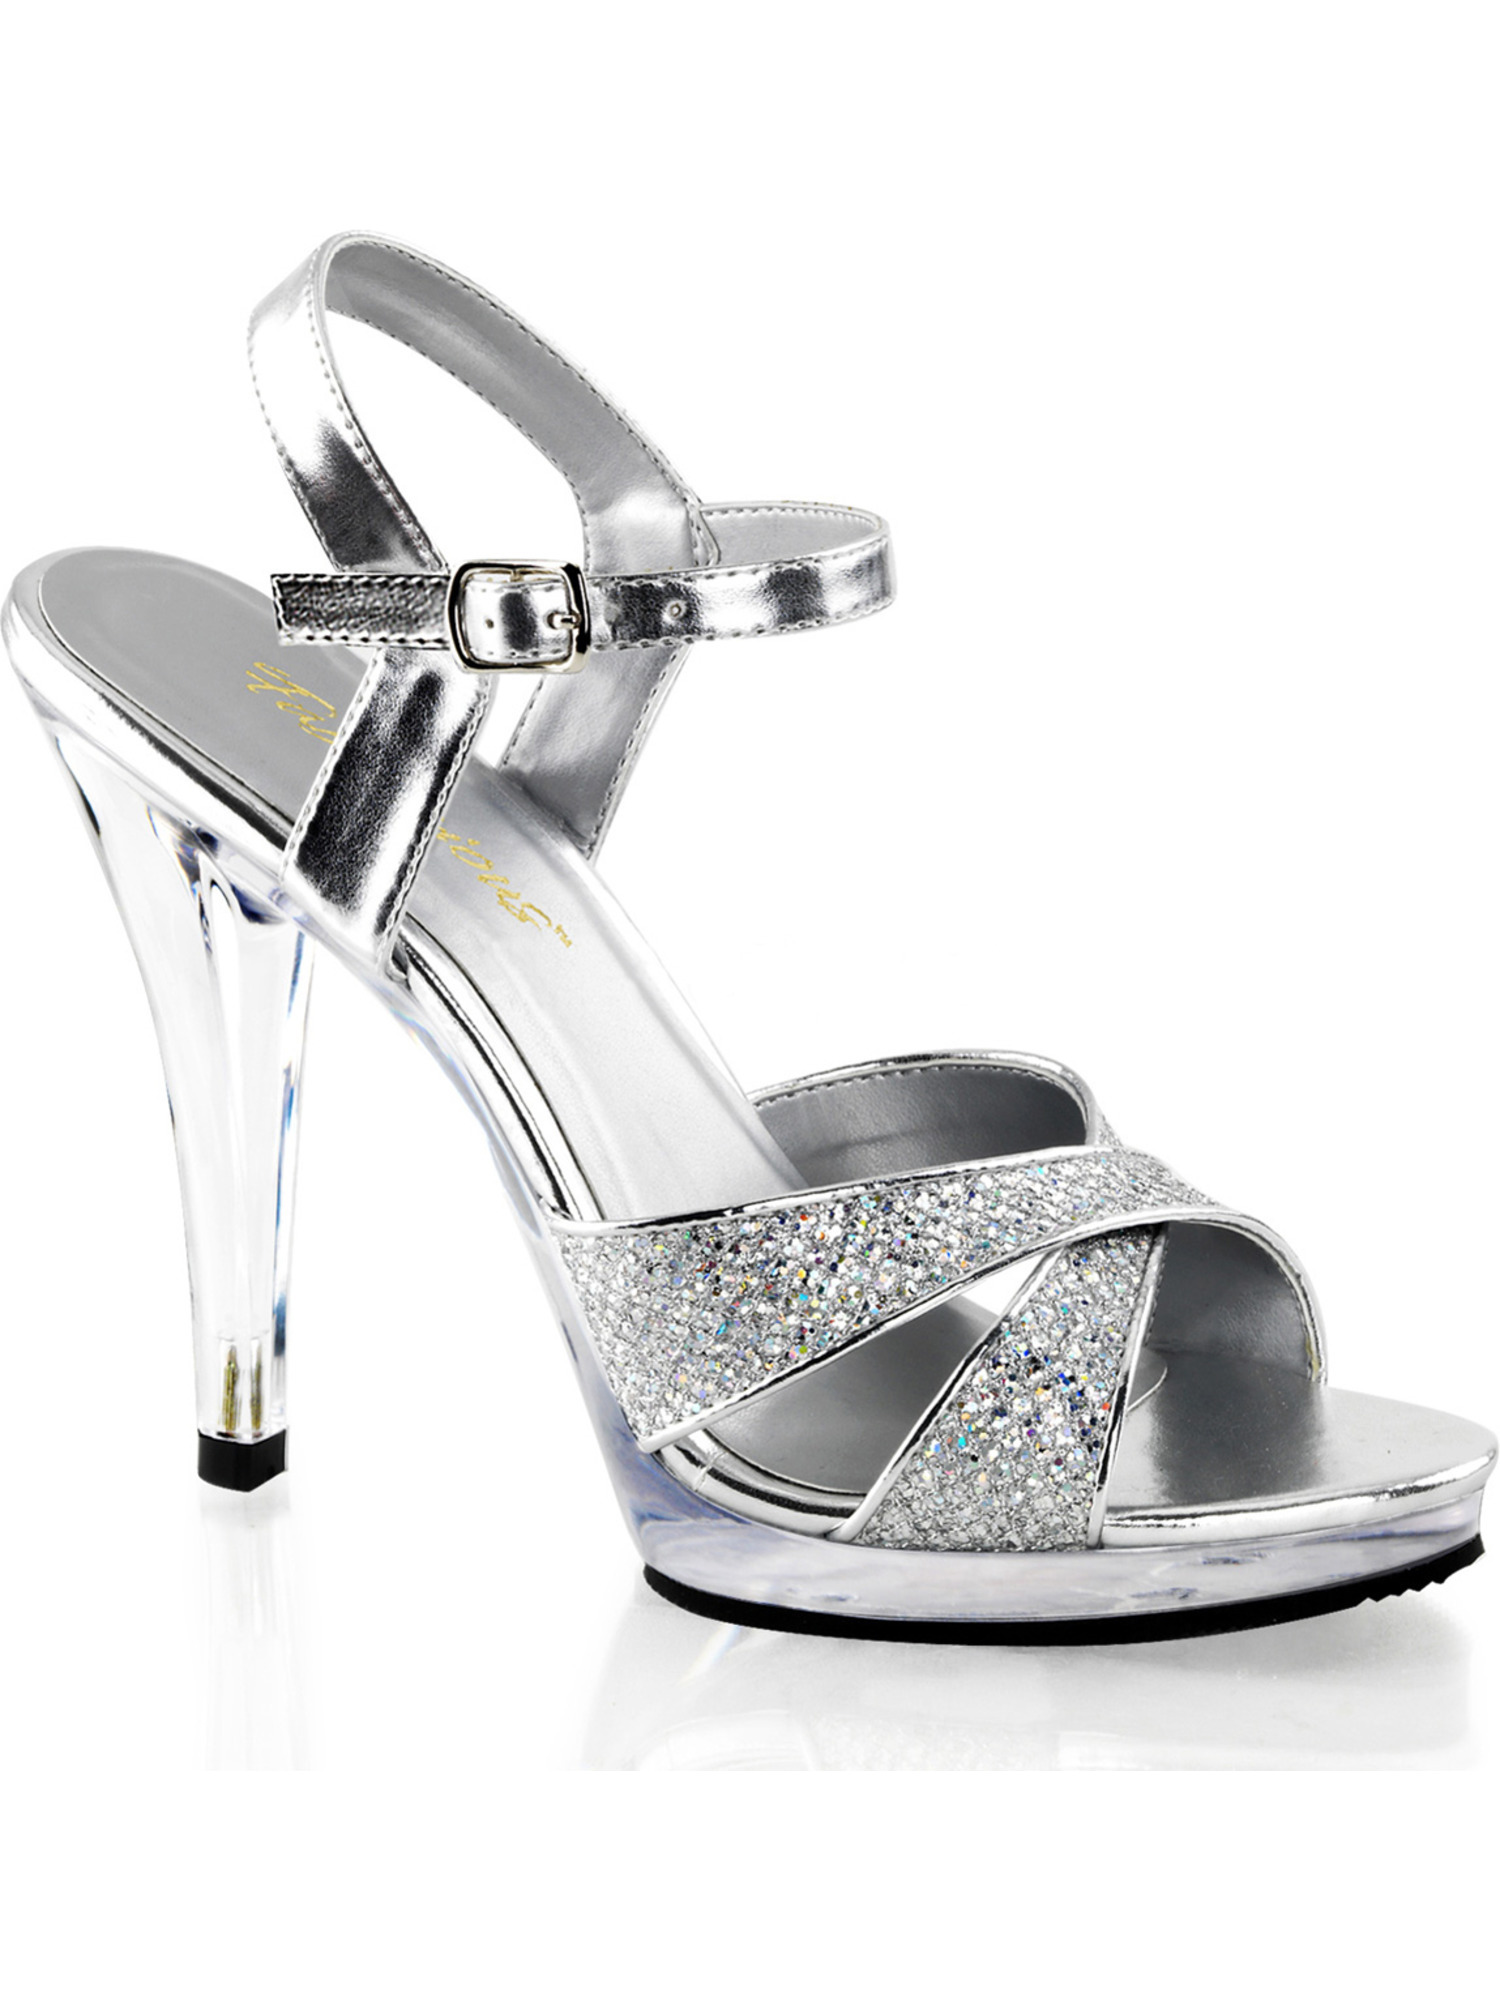 Womens Glam Silver Glitter Sandals with